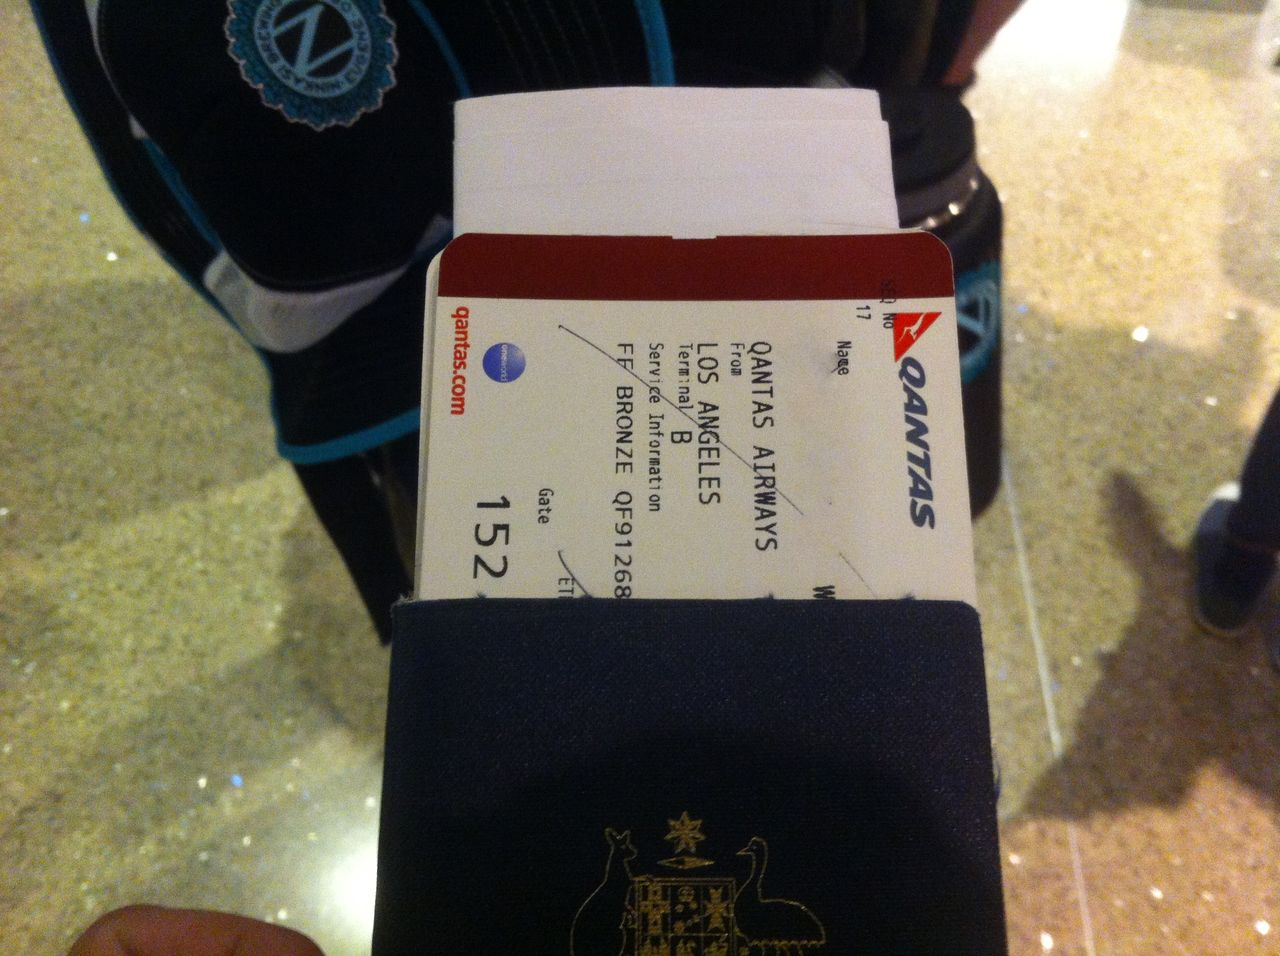 Review of Qantas flight from Los Angeles to Melbourne in Economy